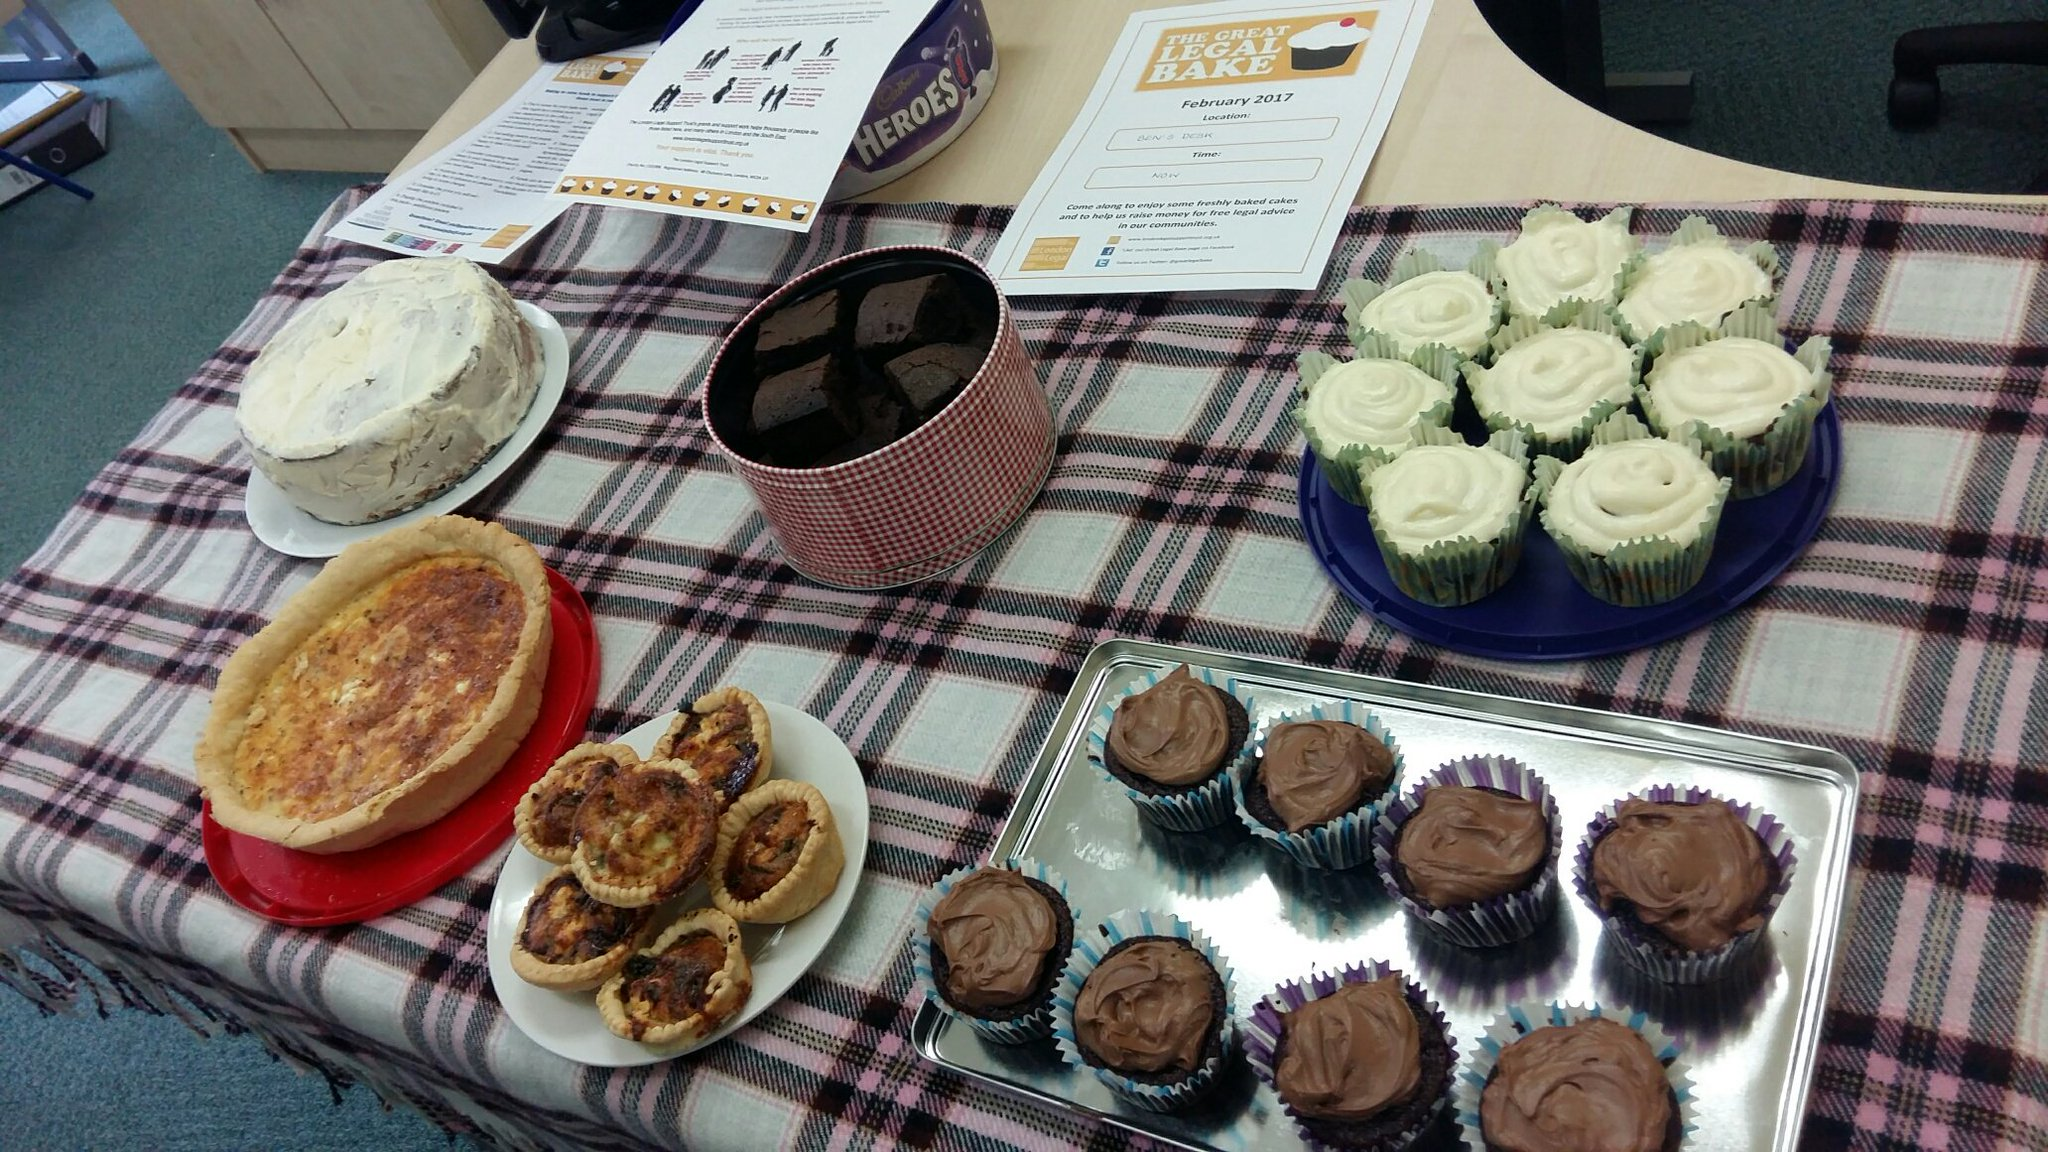 The John M Hayes Bristol office's baking efforts for the #greatlegalbake We're now all feeling the effects of too much sugar!! https://t.co/kcF6tVh0Rq